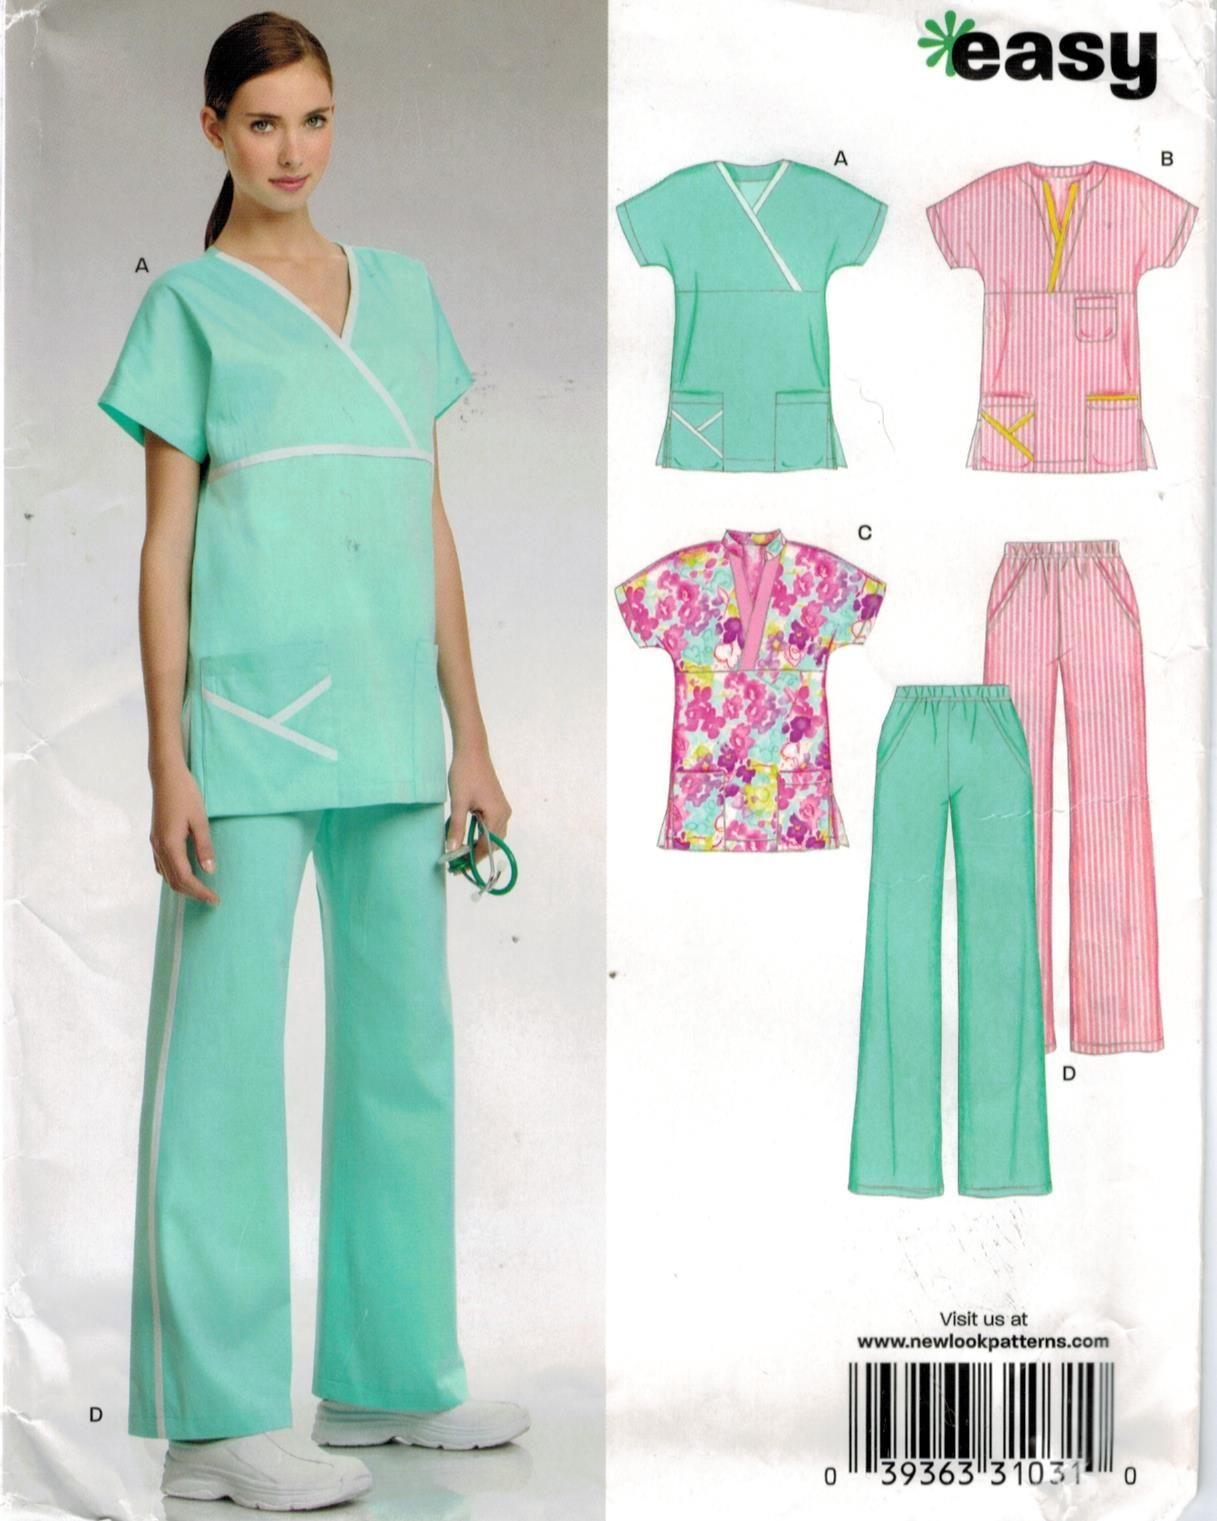 New Look Pattern 6739 Nurses Scrubs Uniform Sizes 8 through 18 ...